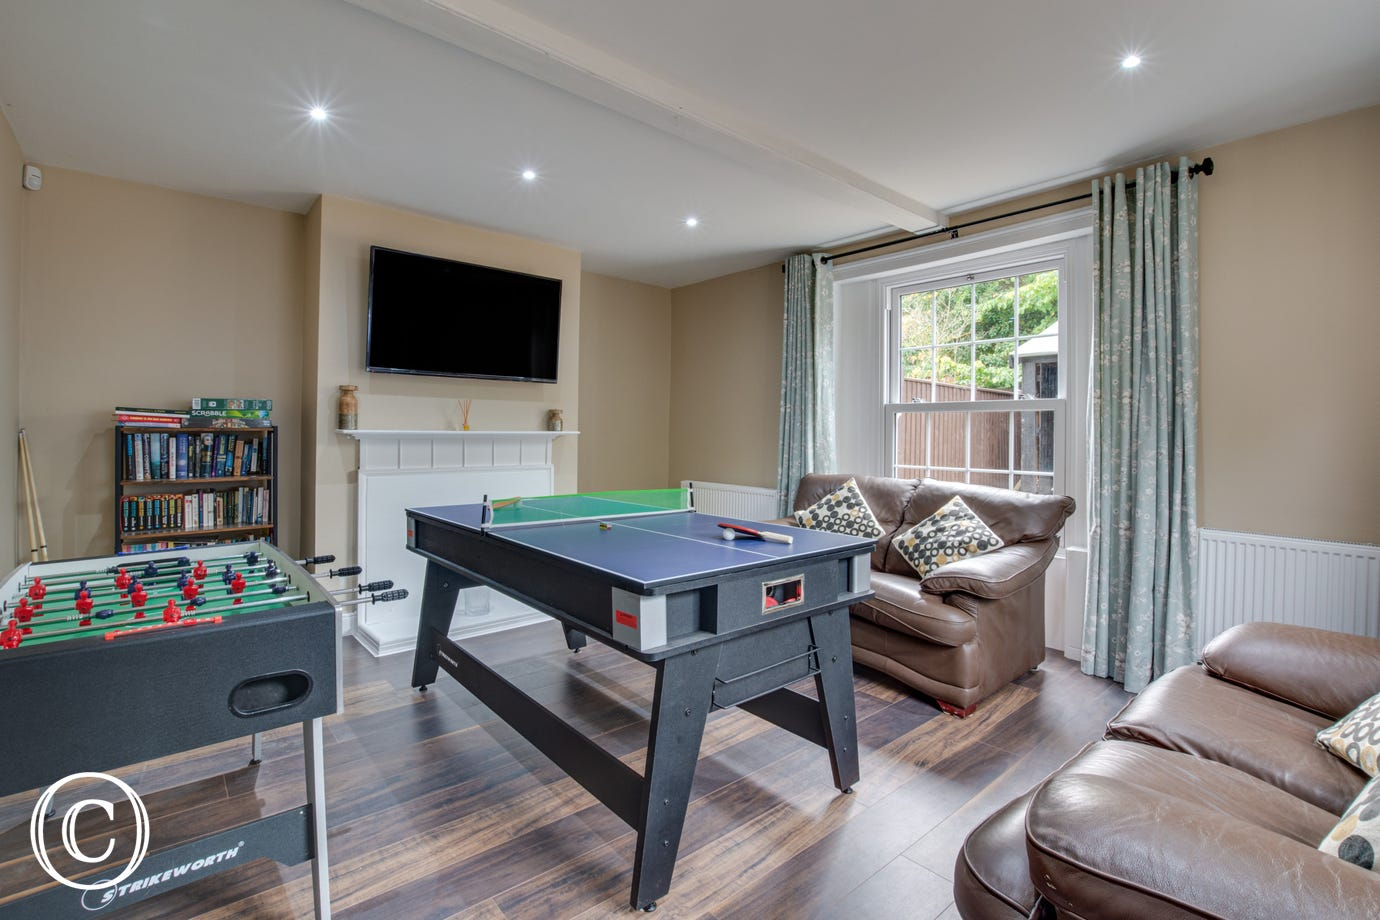 Games Room with football table